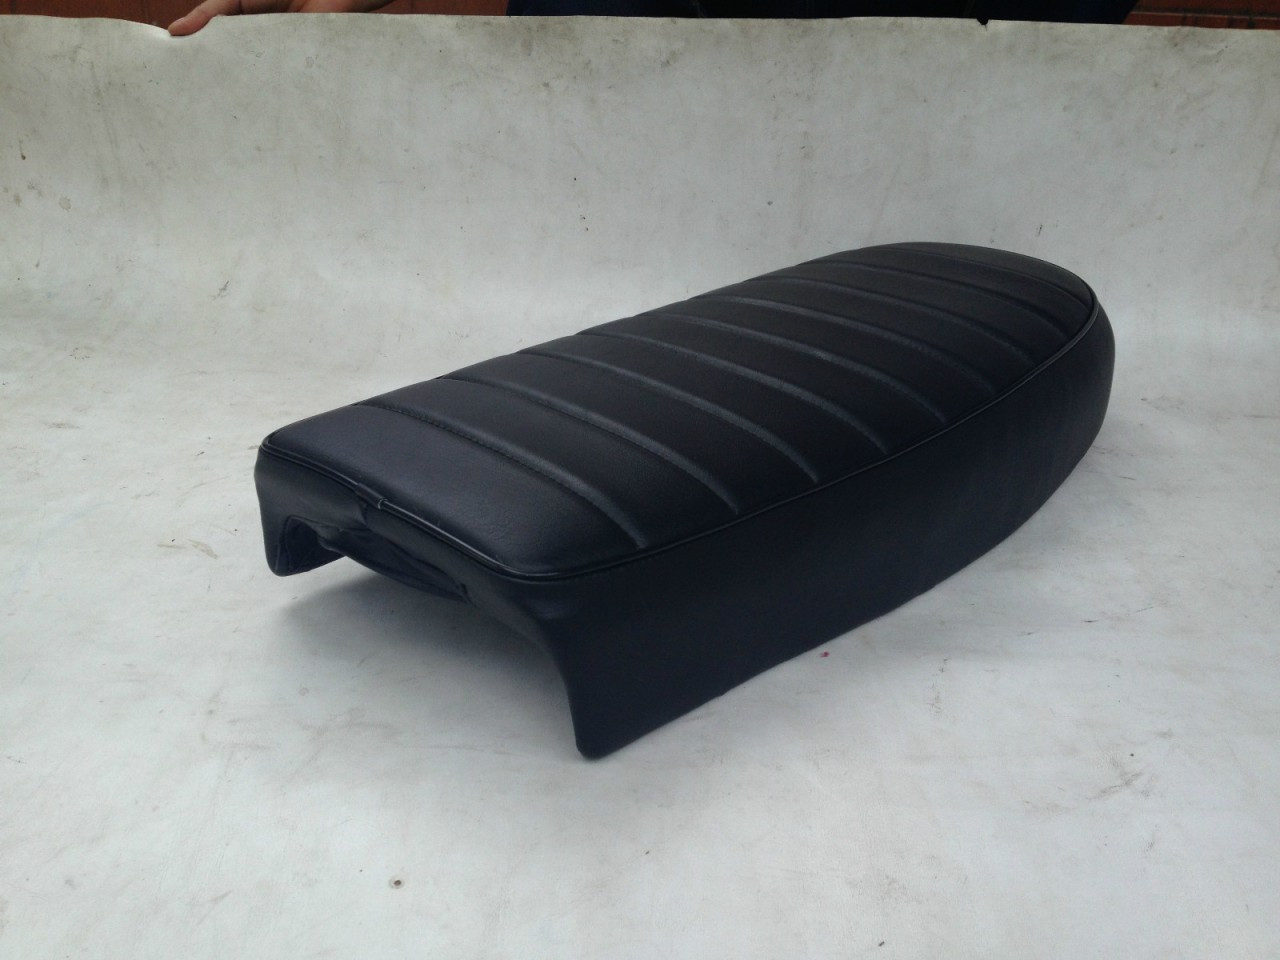 1968 - 1971 Honda CB450 sport seat with short motorcycle seat pan #2638